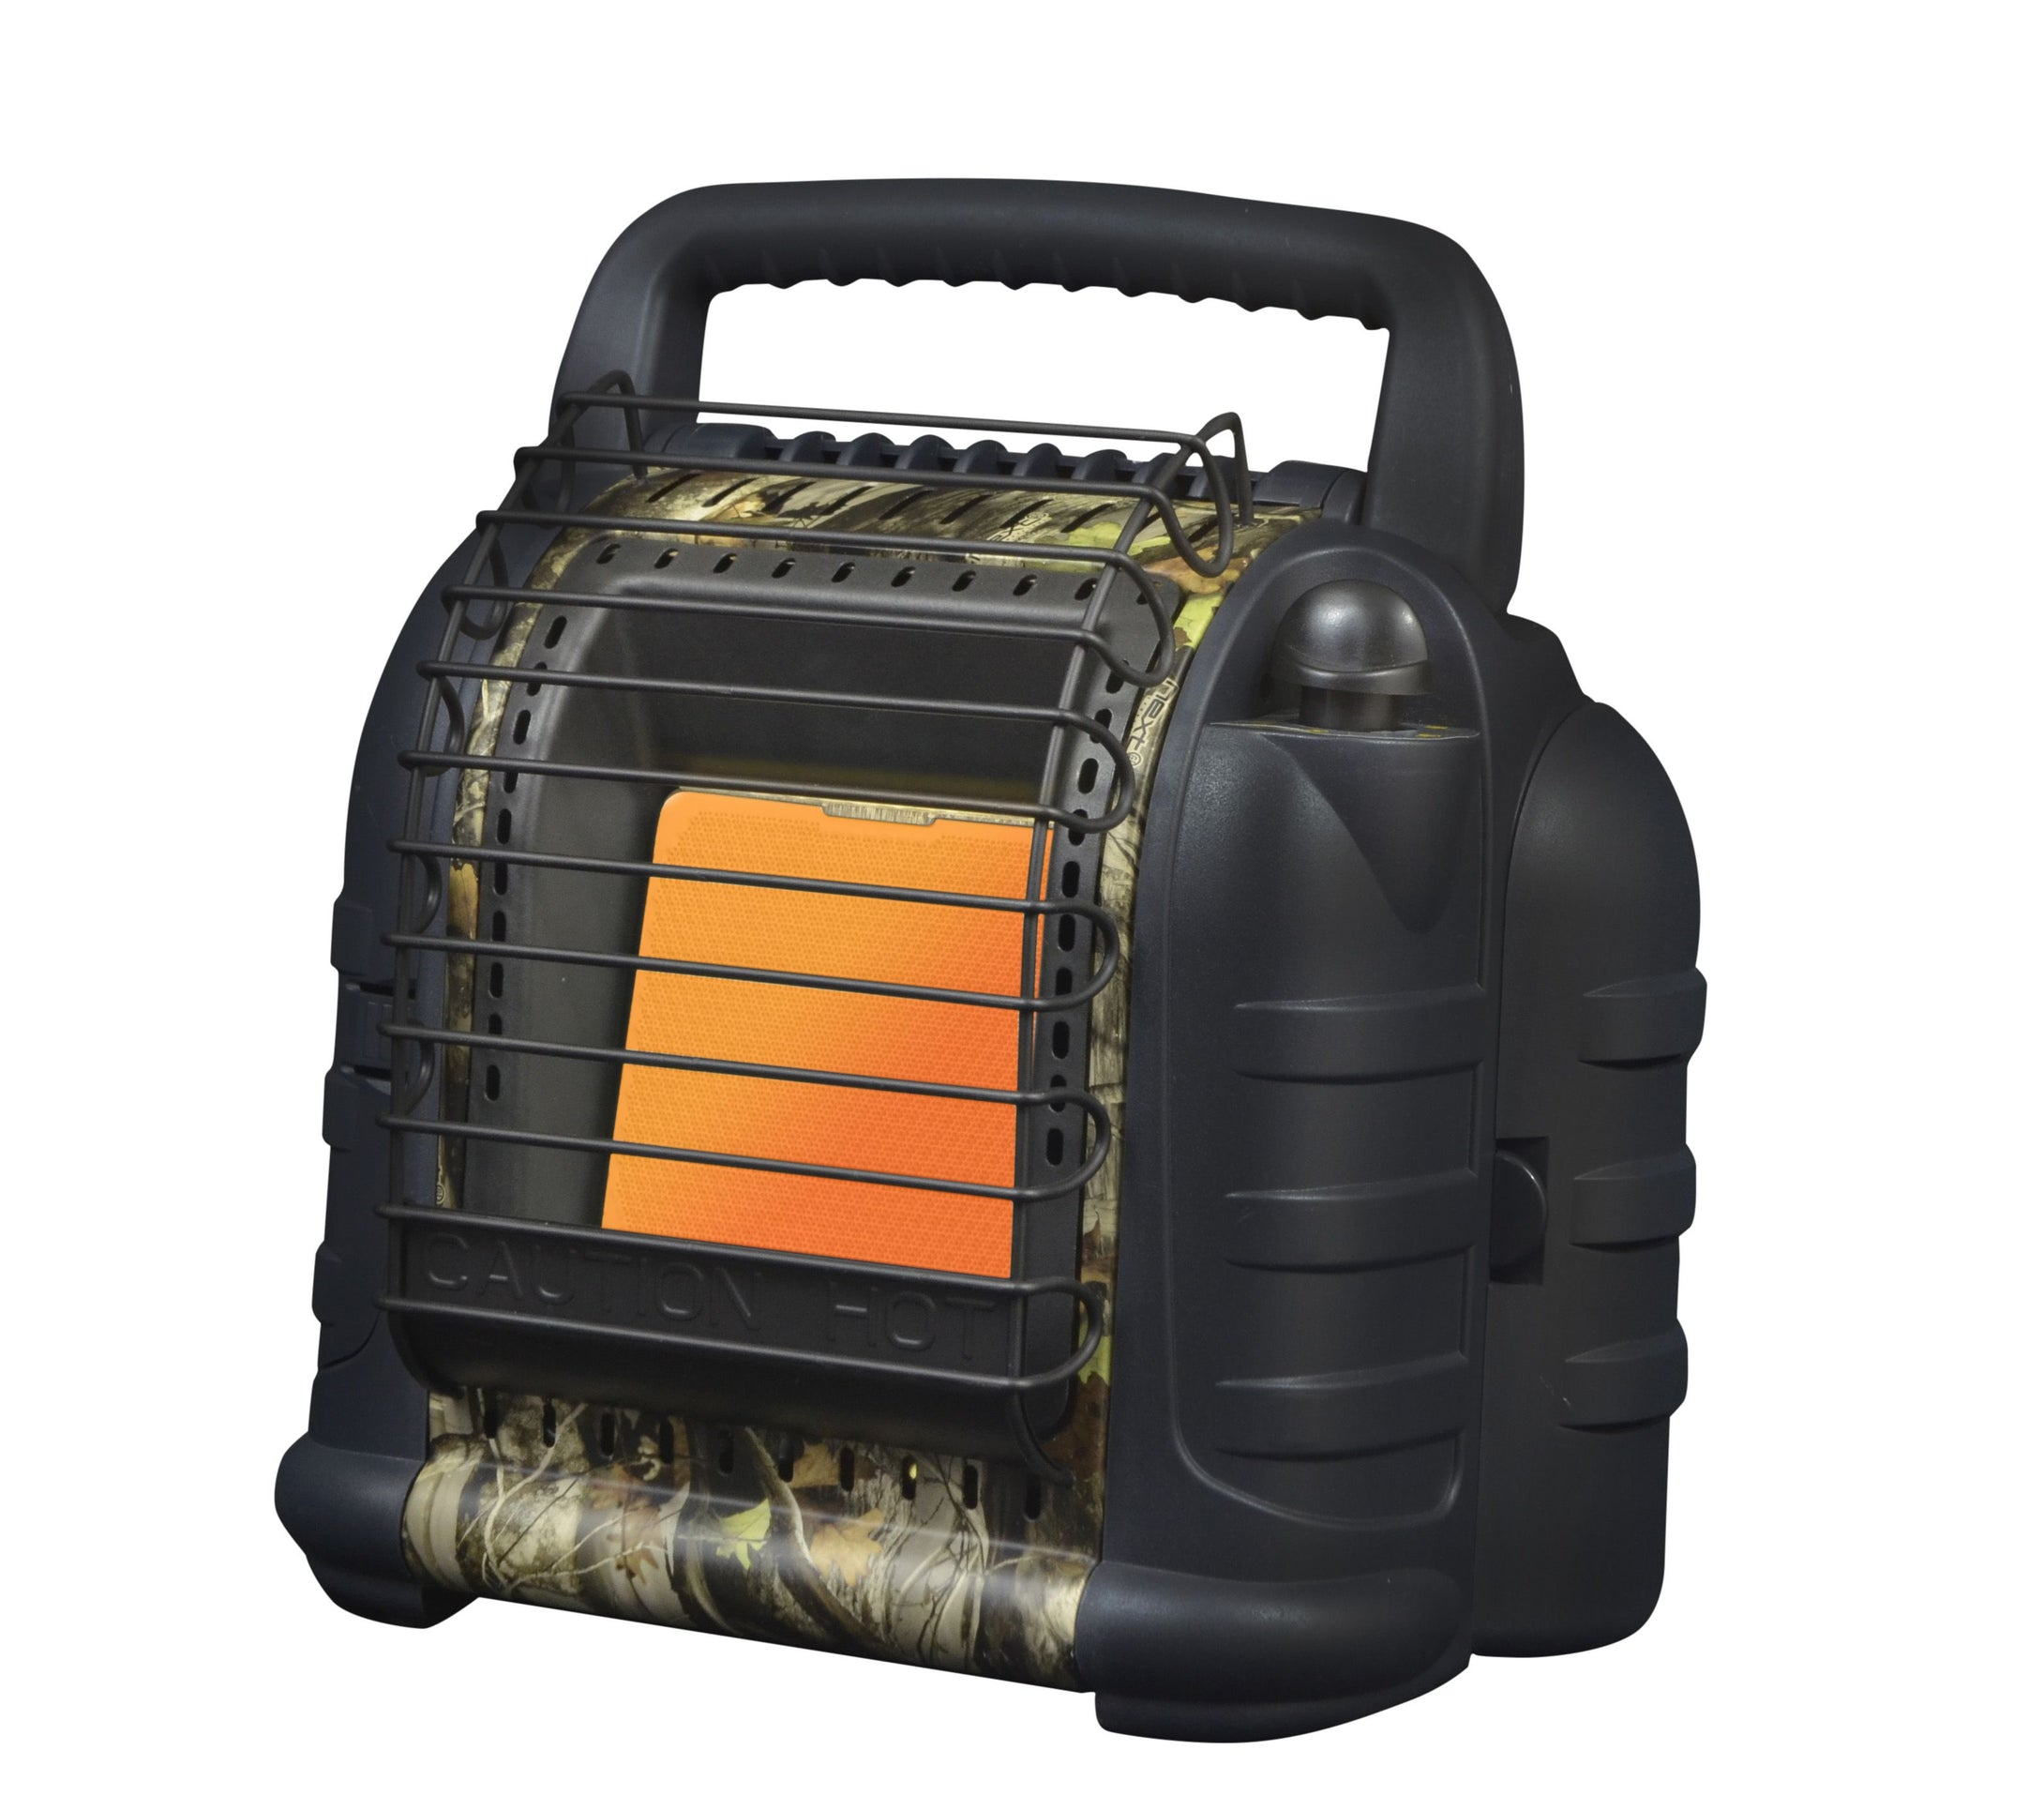 Mr Heater Hunting Buddy Portable Heater for sale at Kiigns Hunting.